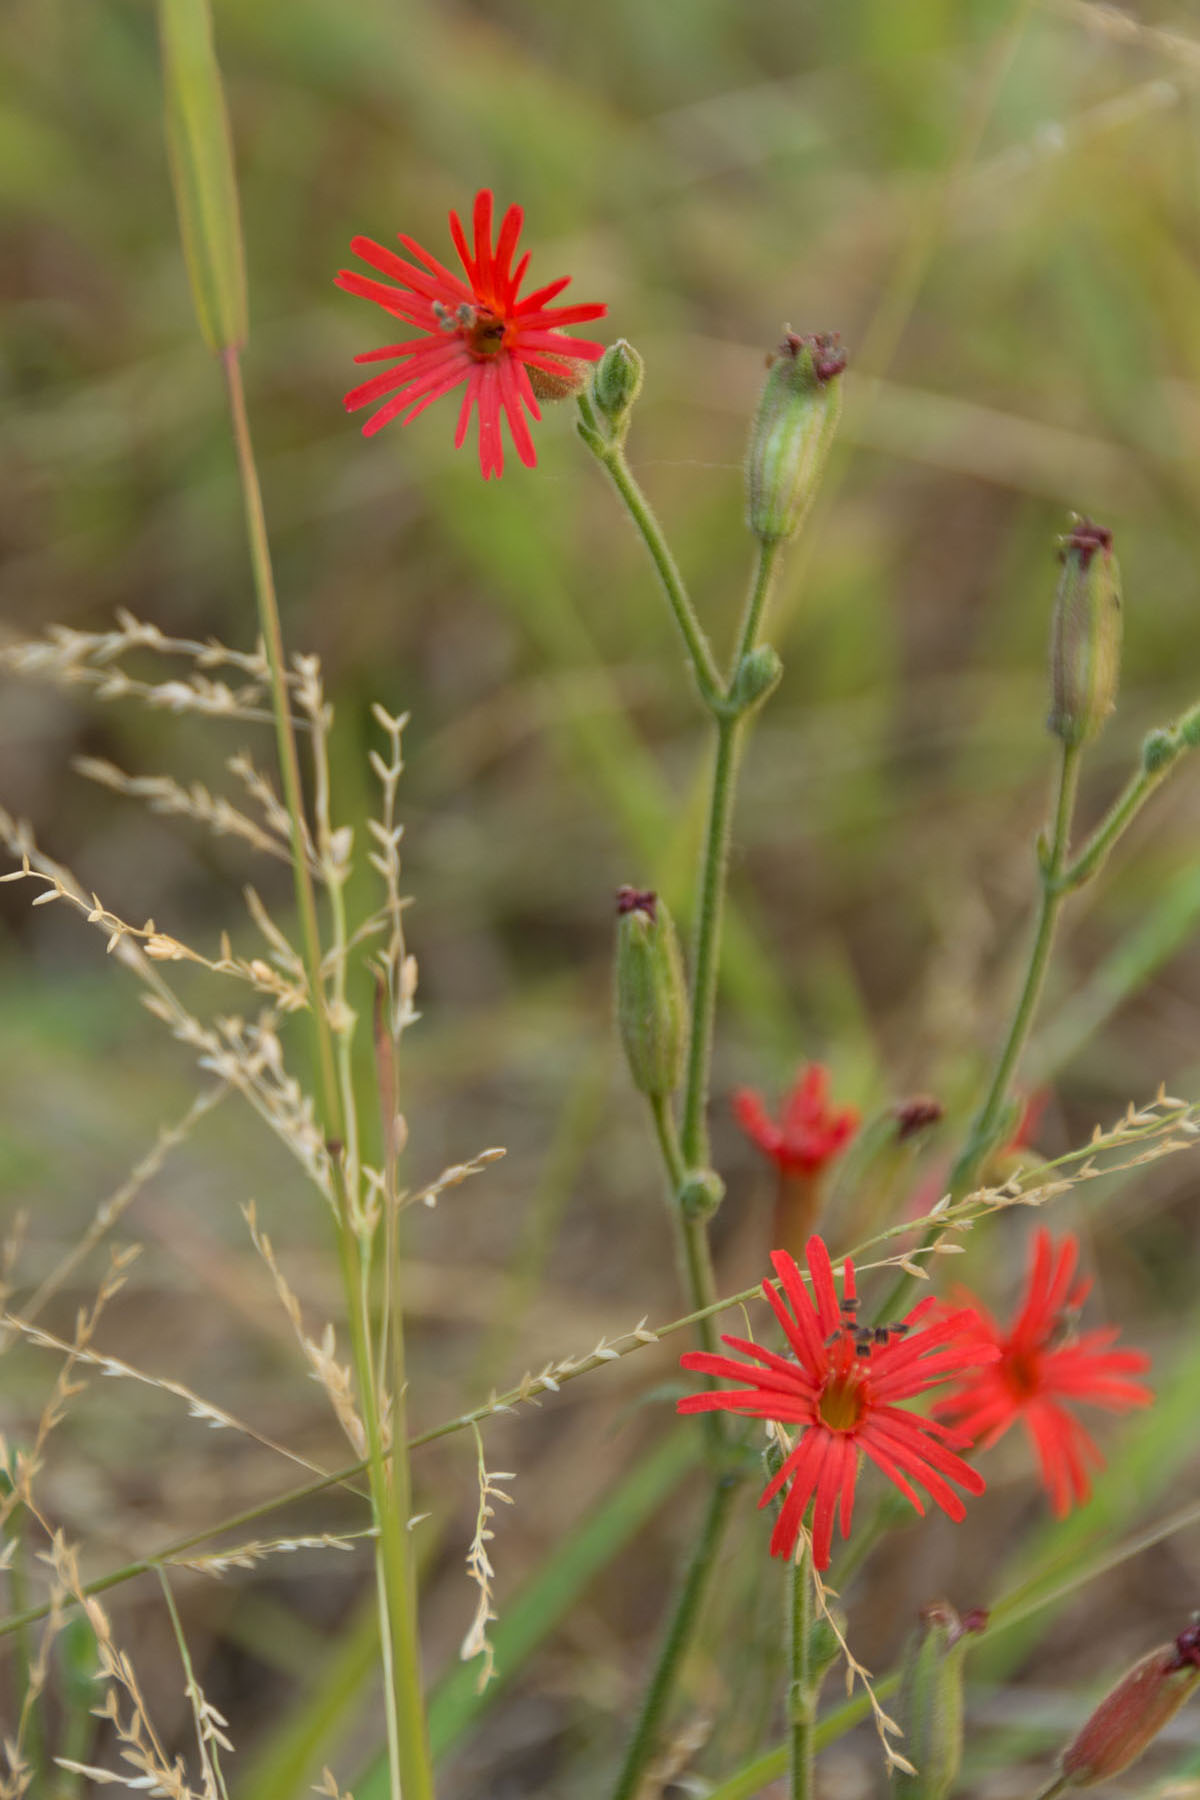 red flower with long skinny petals